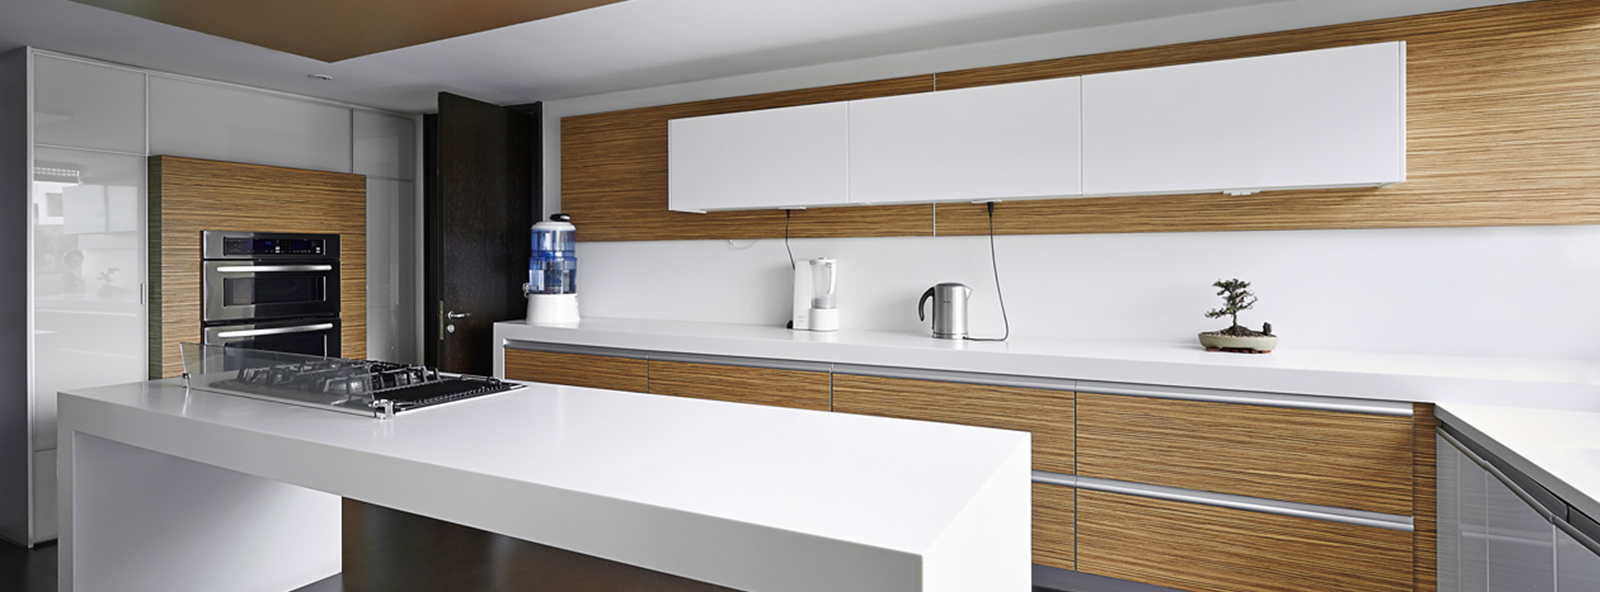 Solid Surface Material Supplier Company In Dubai Kitchen Countertops Uae